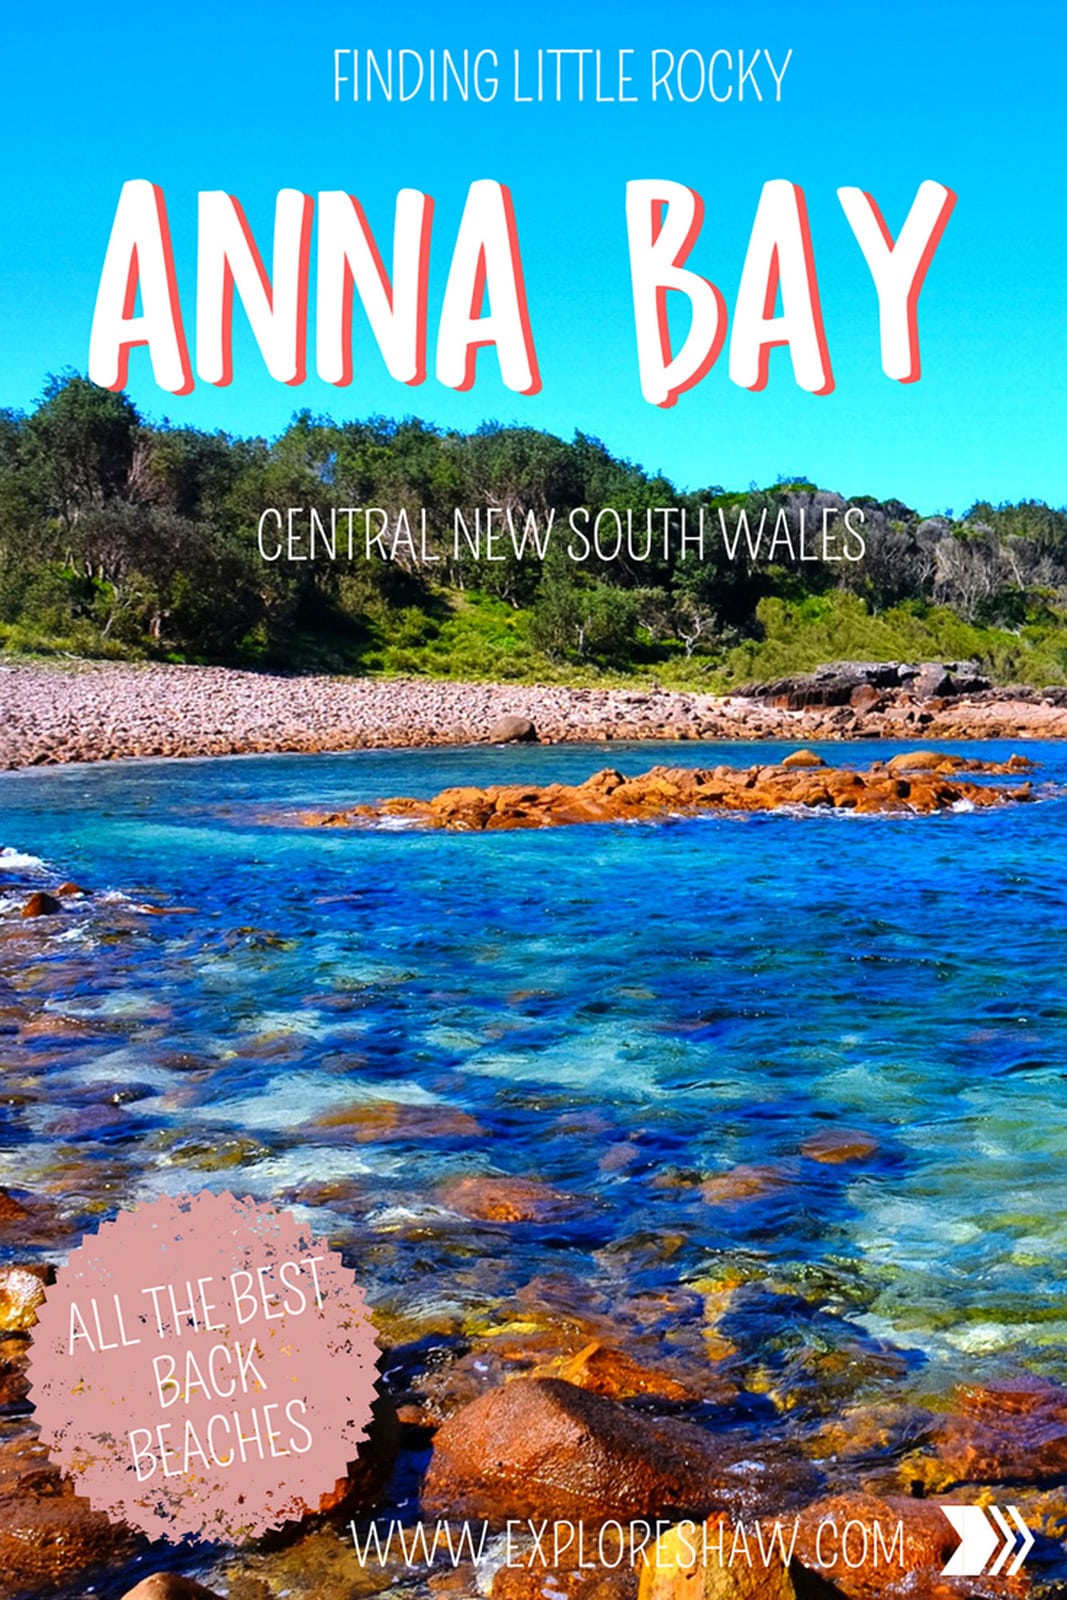 One of the best ways to explore Anna Bay and the Port Stephens region is to just pull into any dirt or sand track that looks big enough to fit a car and see what you find at the end. That's how we found and fell in love with Little Rocky!